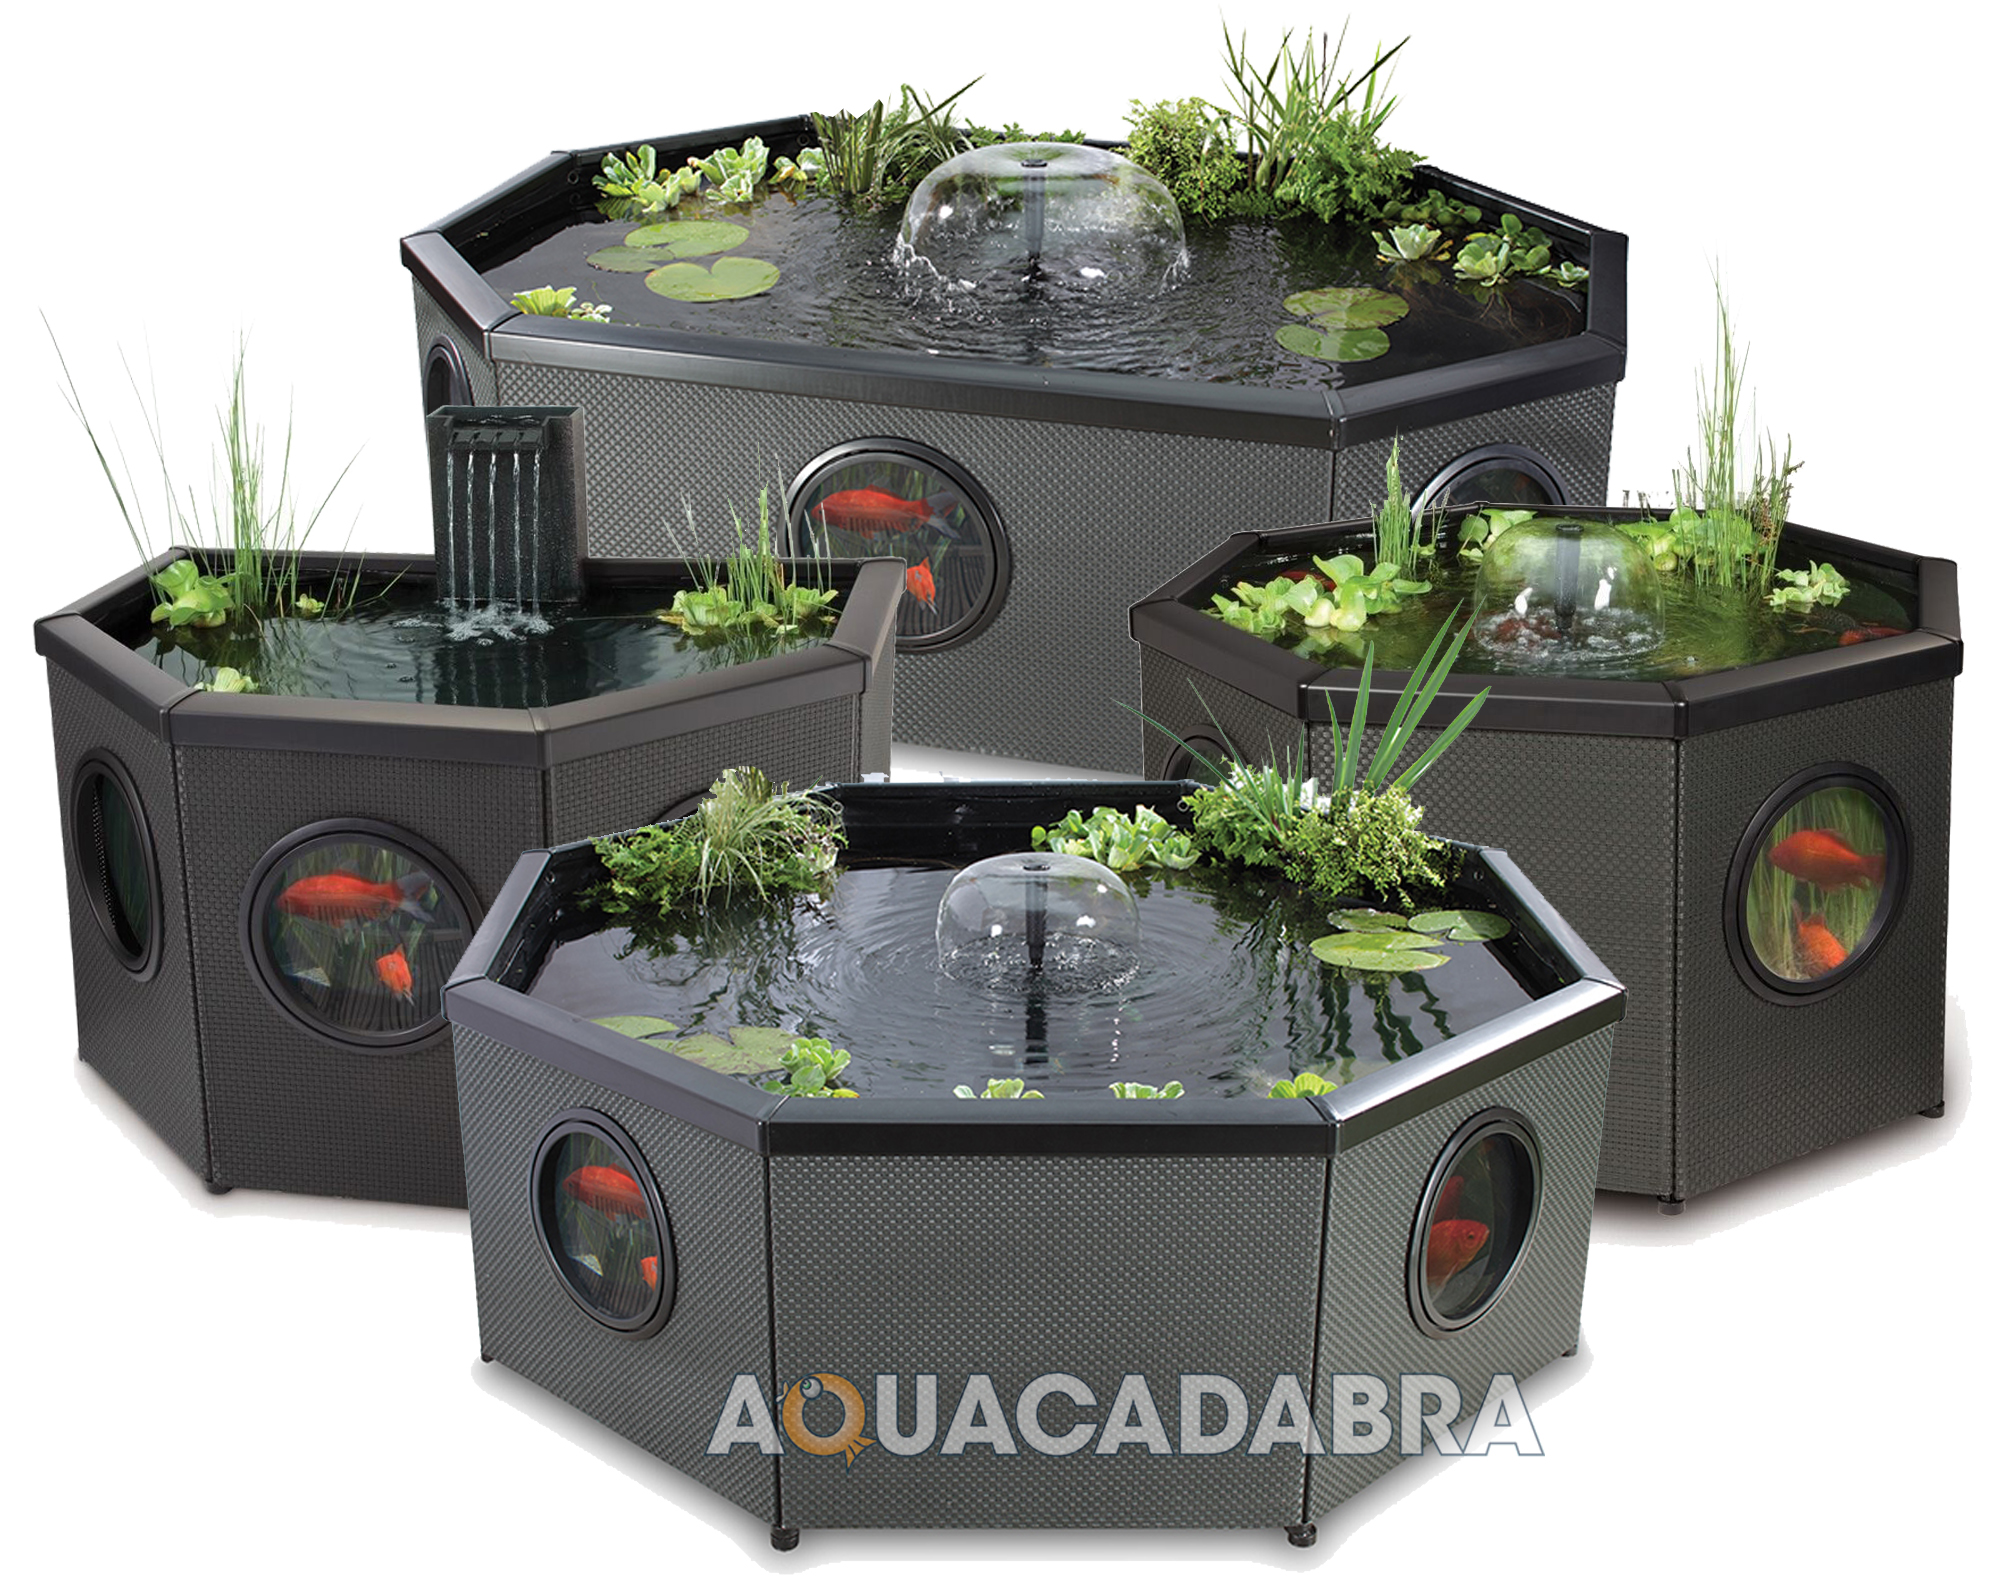 Blagdon Affinity Mocha Fish Pond Koi Coldwater Patio Aquarium Pool Water Feature Ebay